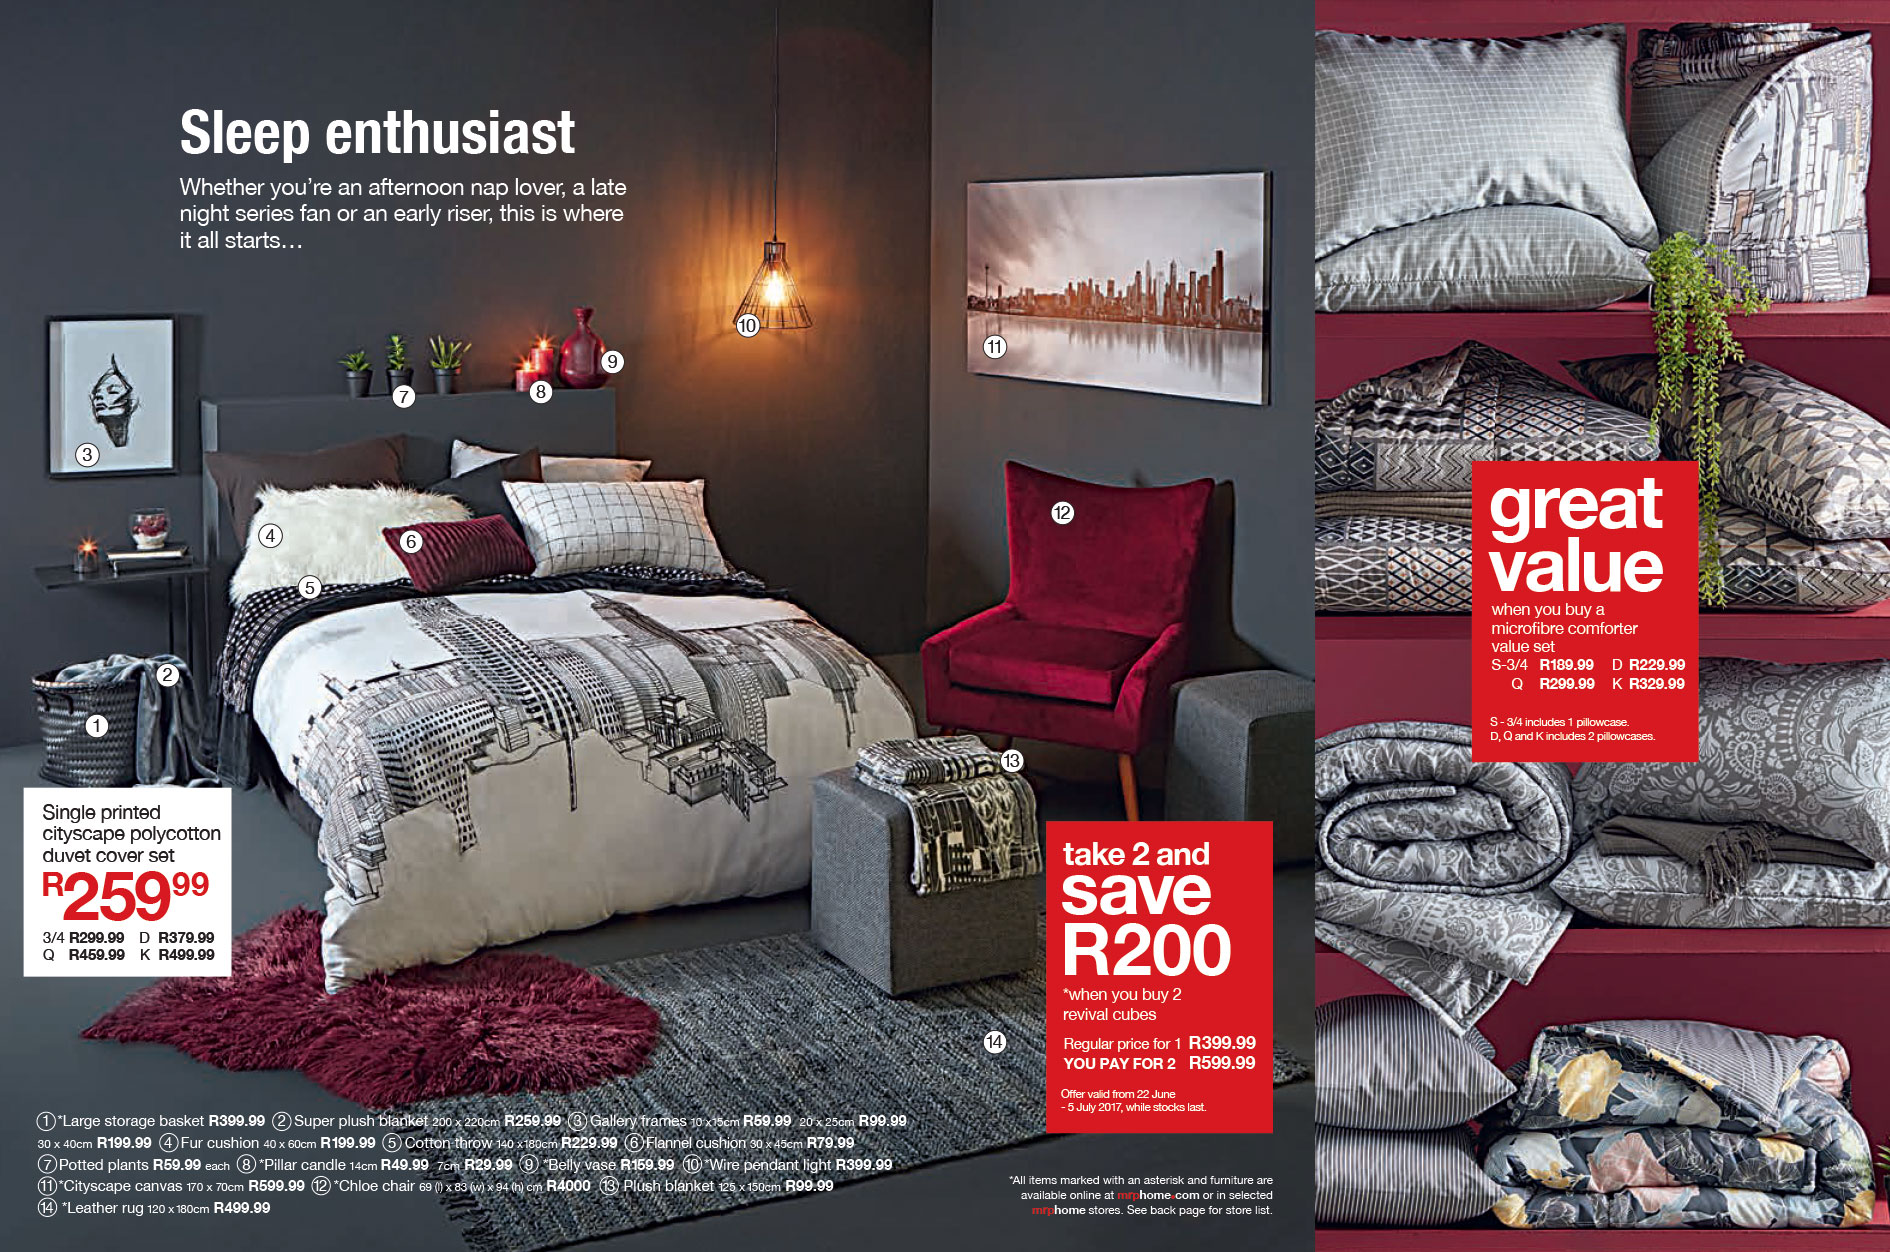 Mr mr mr mr price home catalogue 2014 - Bedroom Furniture Catalogue 2017 Mrp Home Winter Catalogue 2017